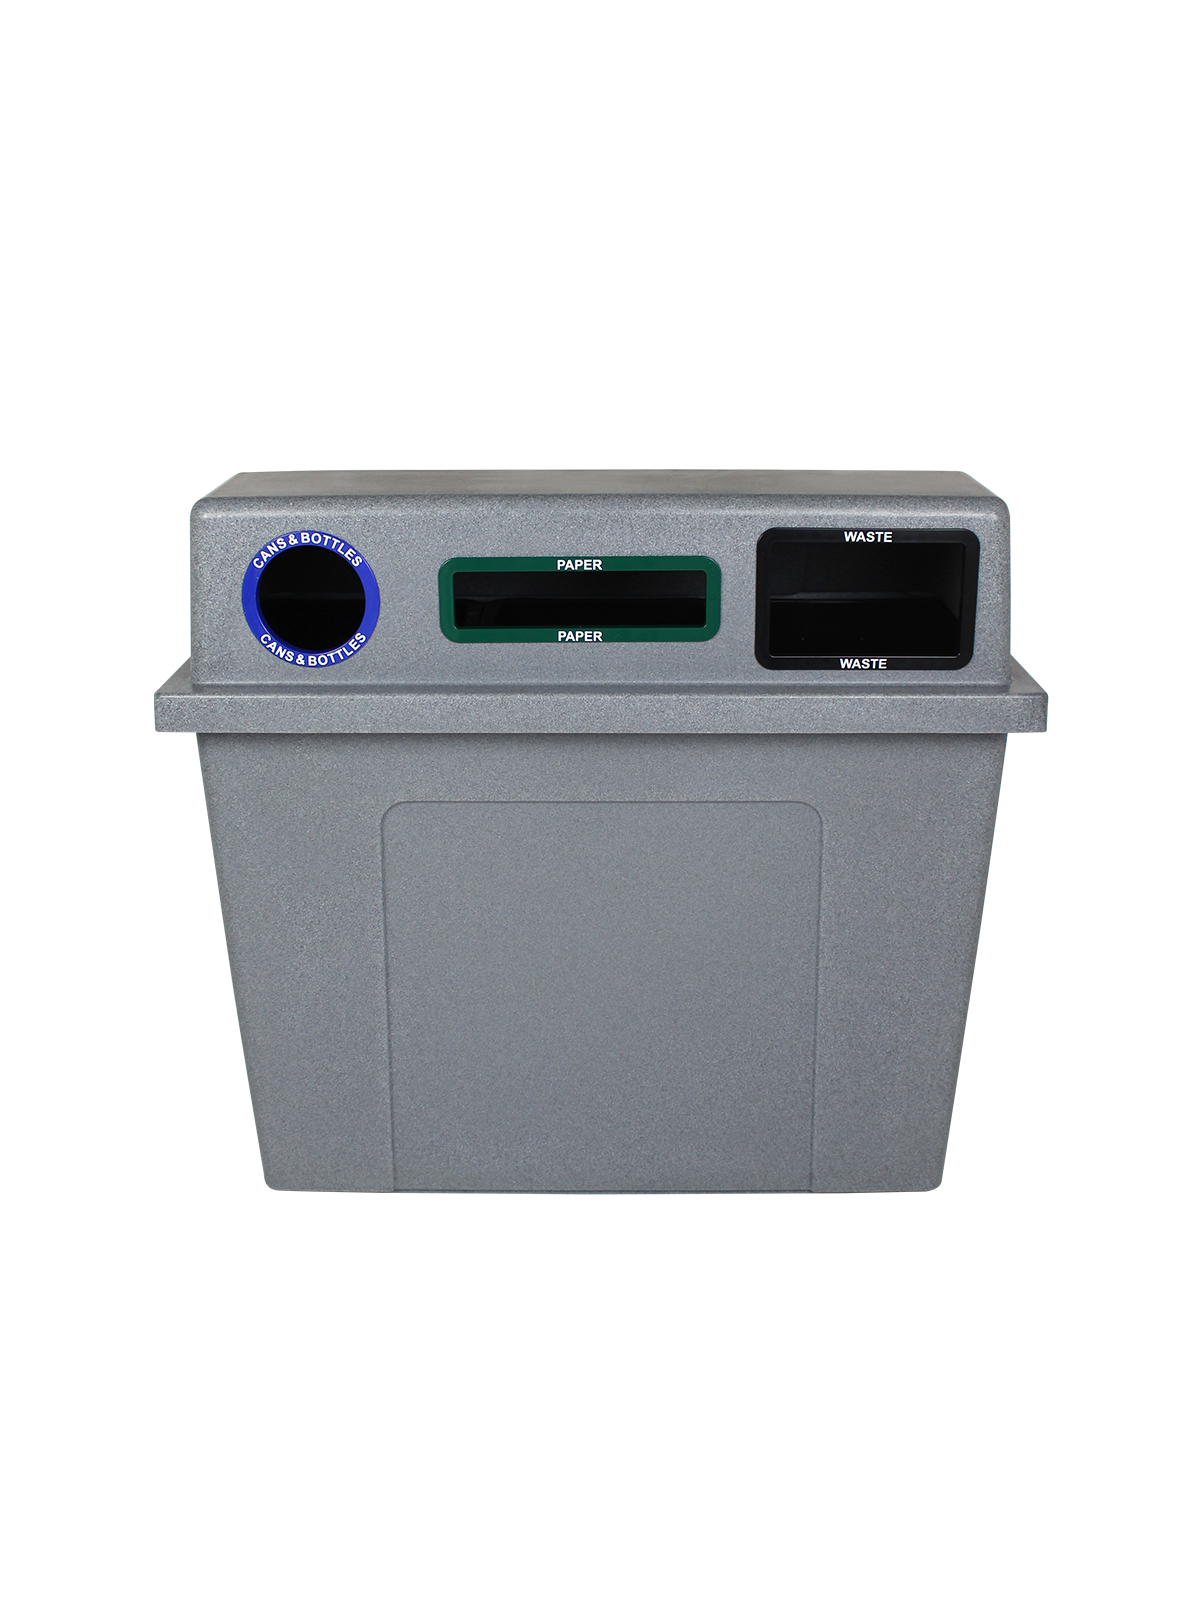 SUPER SORTER - 3-IN-1 - CIRCLE | SLOT | FULL - GREYSTONE - CANS & BOTTLES | PAPER | WASTE title=